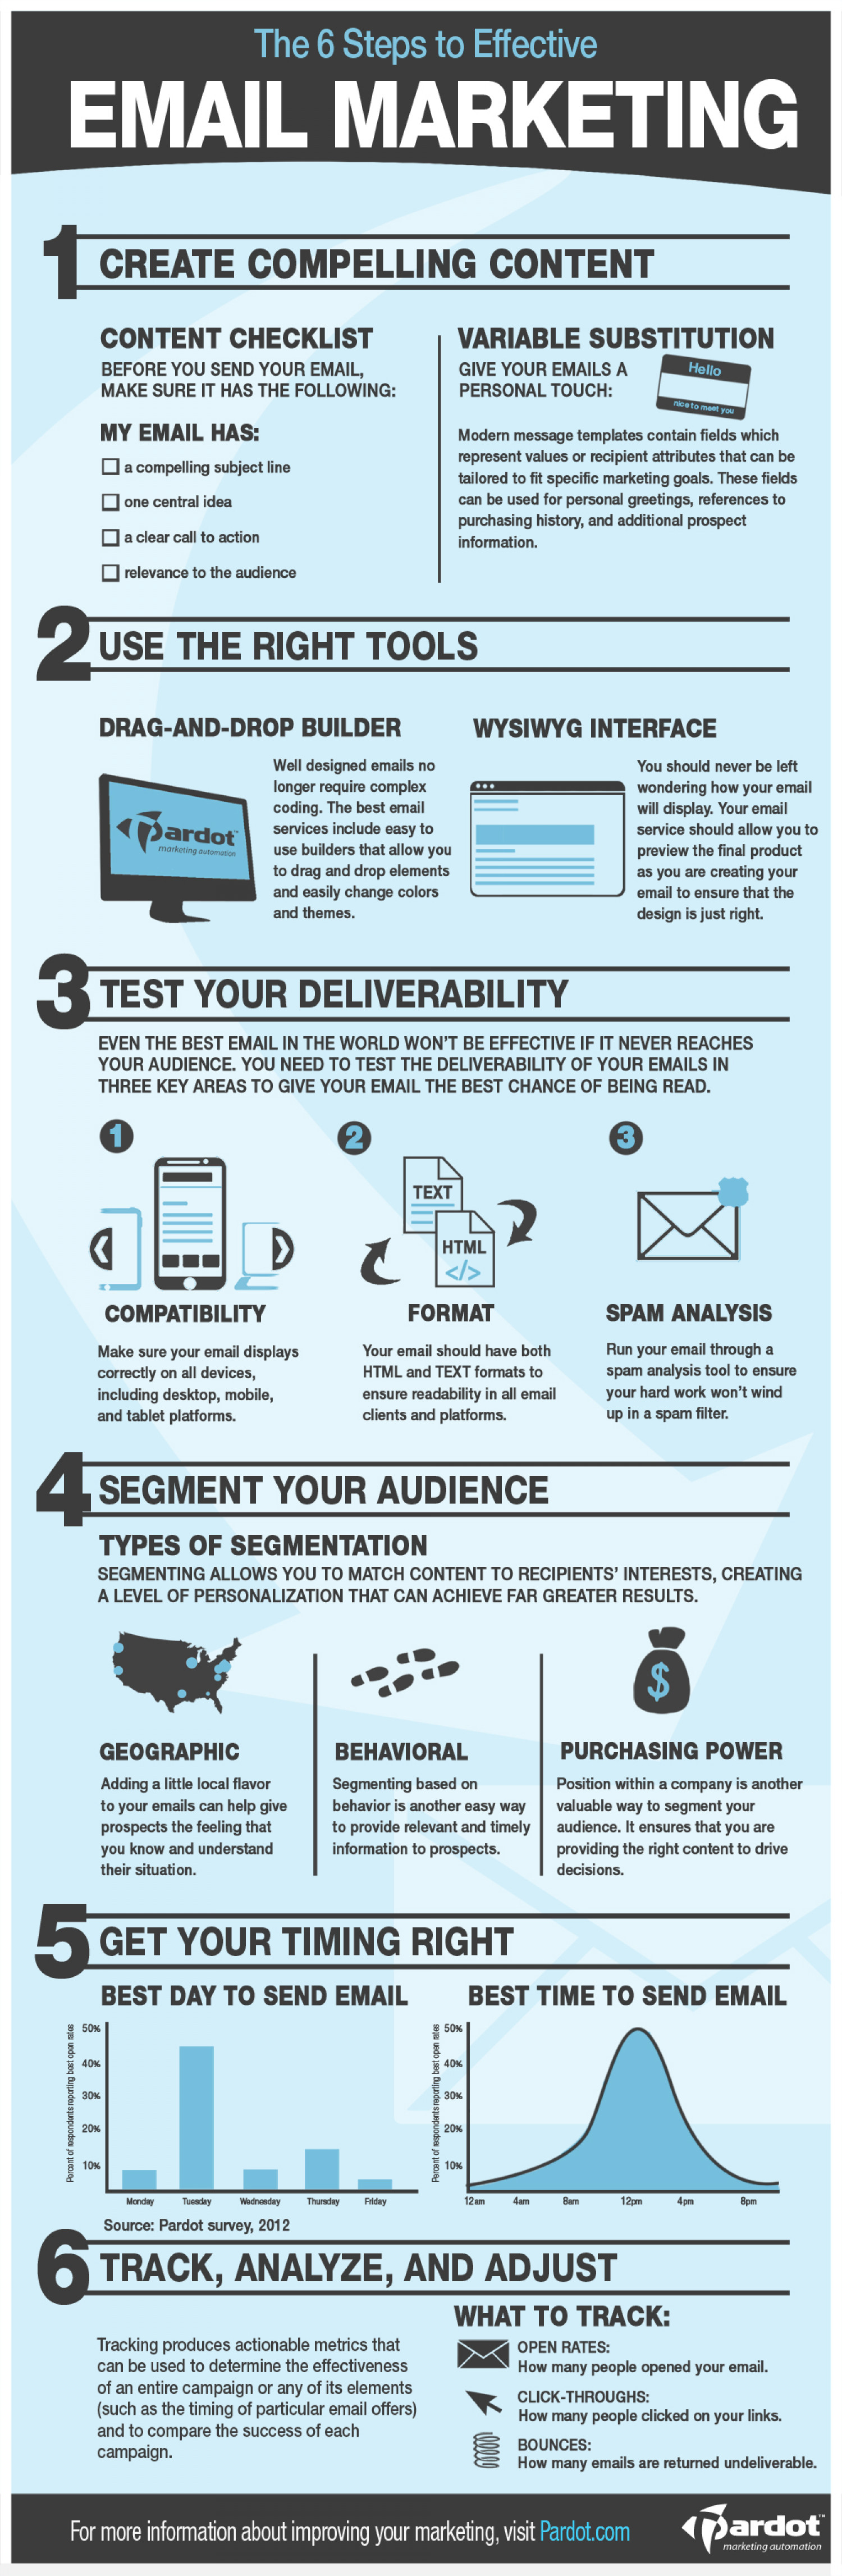 6 Steps to Effective Email Marketing  Infographic